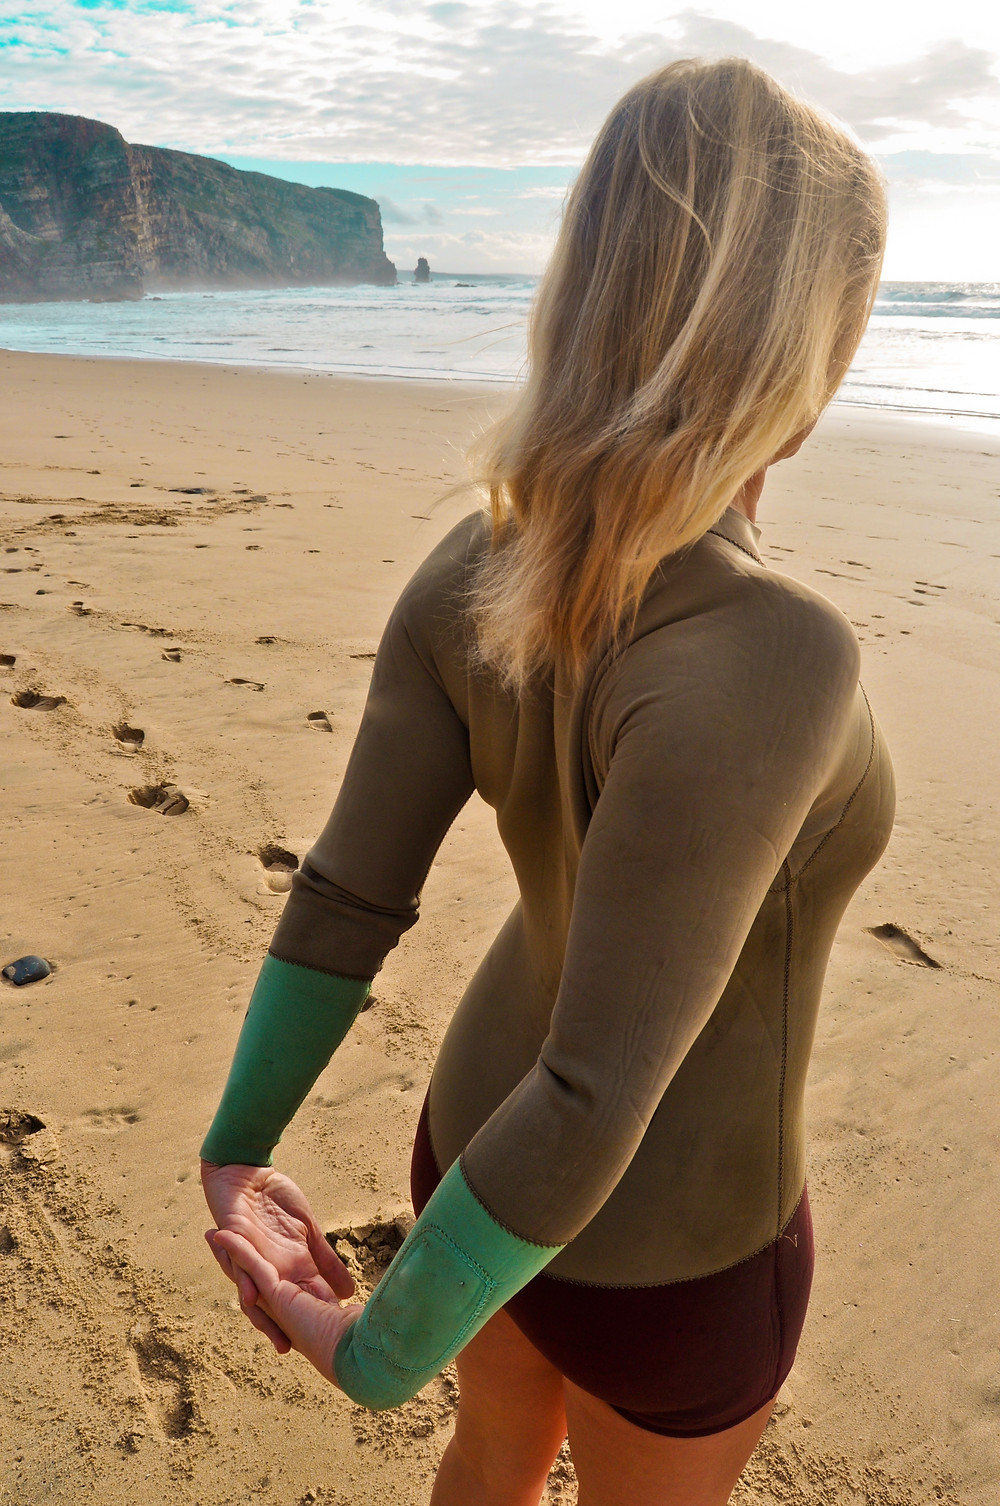 5 YOGA POSES BEFORE YOU SURF